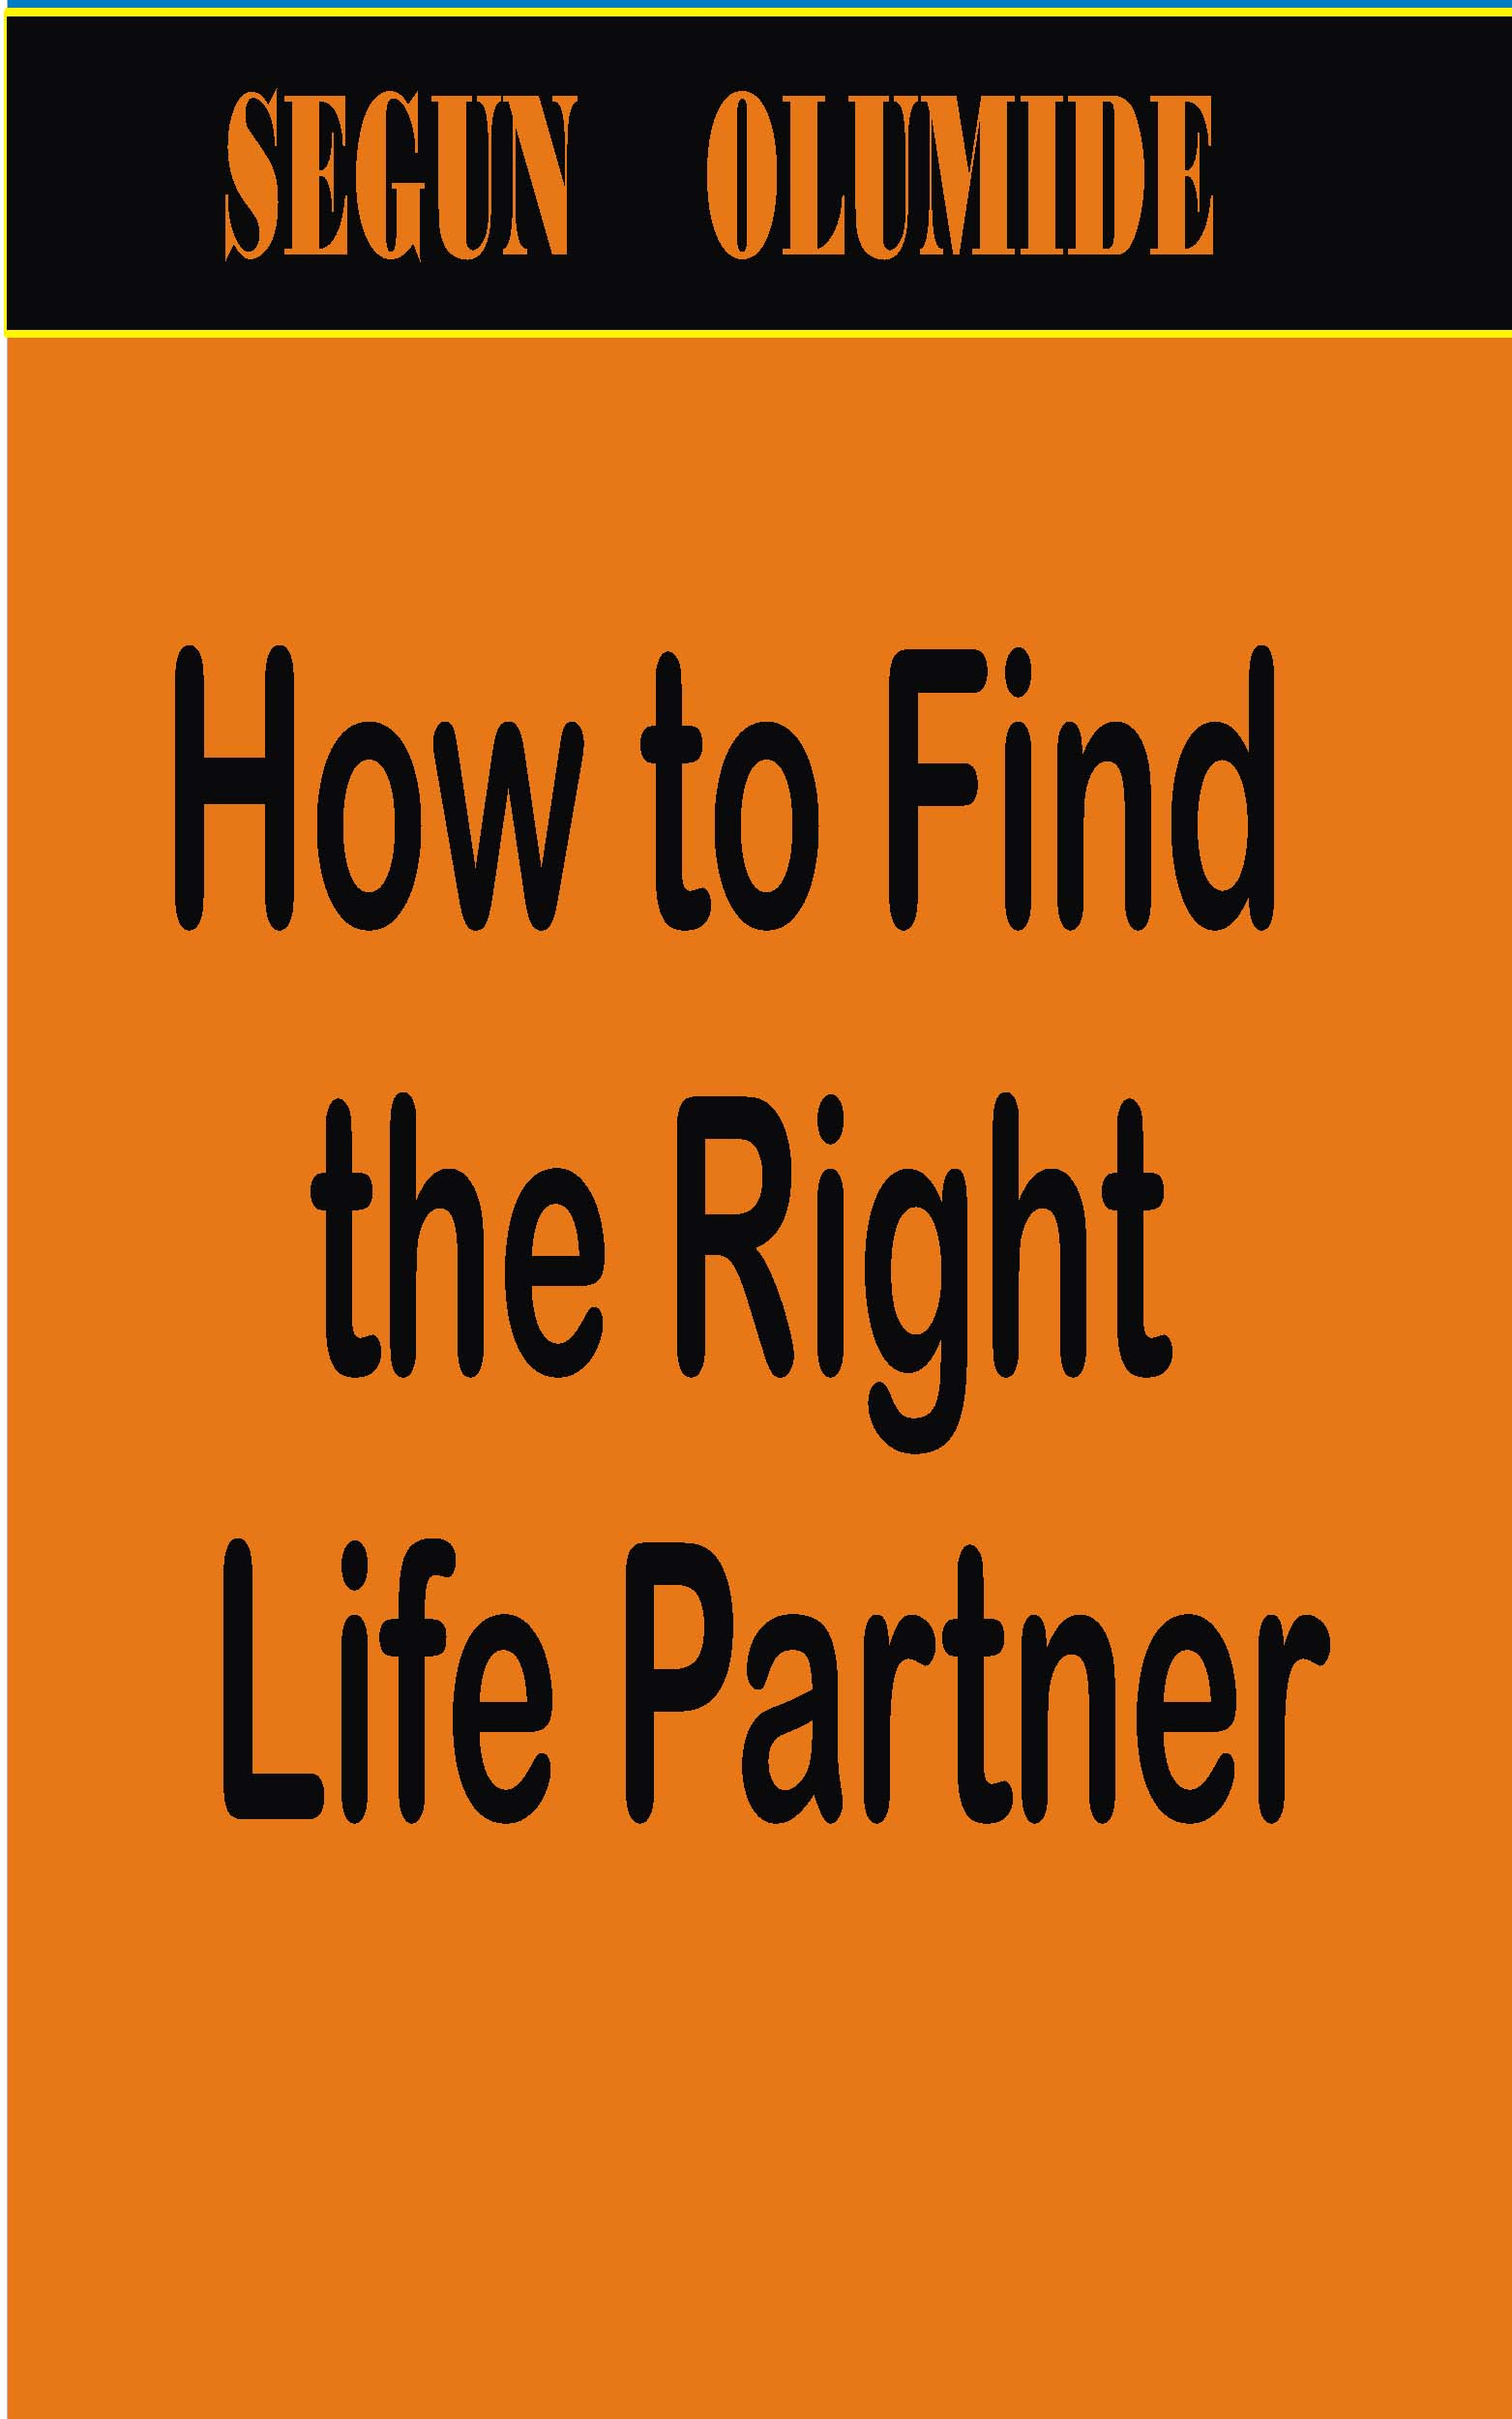 How to Find the Right Life Partner, an Ebook by Segun Olumide